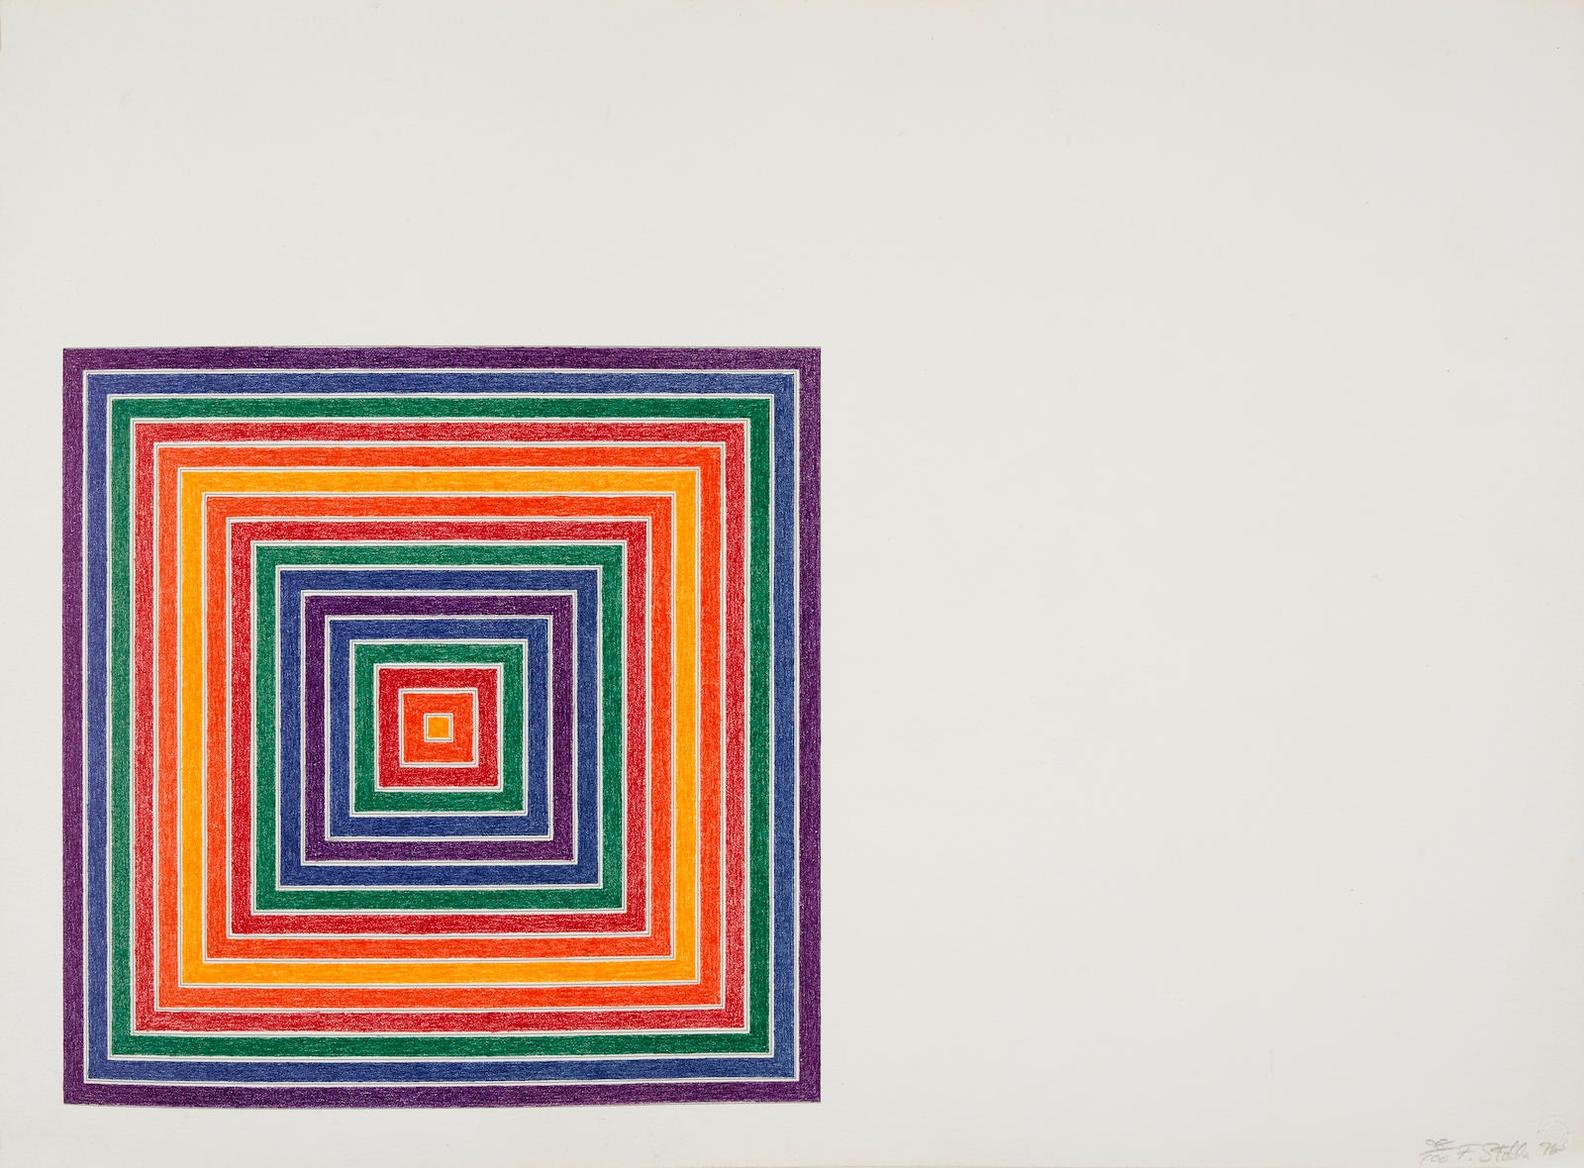 Frank Stella-Honduras Lottery Co., From Multicolored Squares I-1972